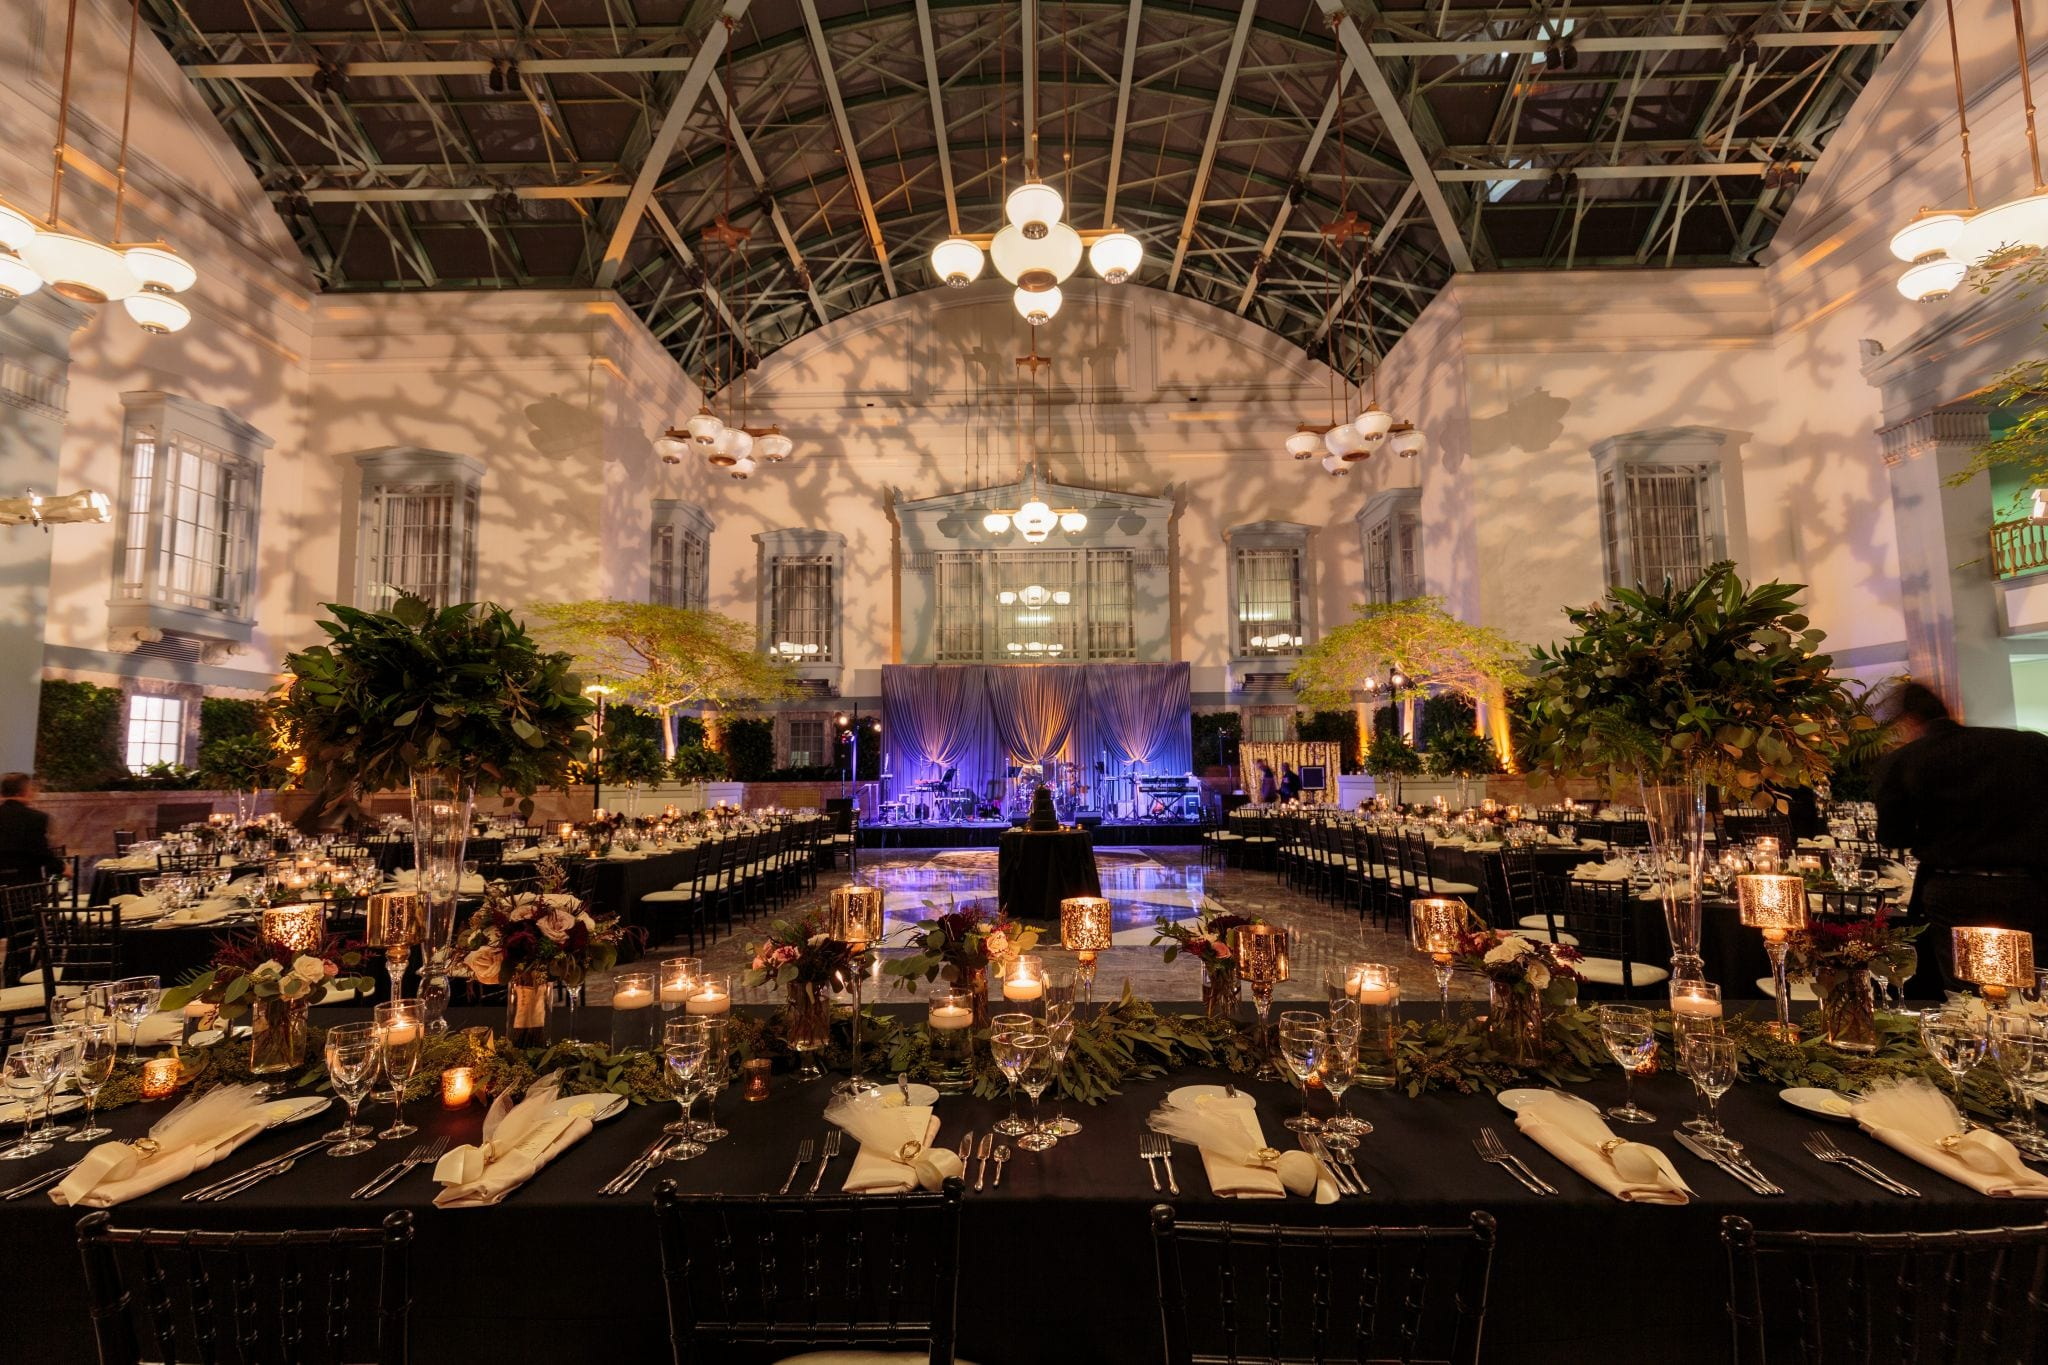 Harold Washington Library Reception Decor - Wes Craft Photography